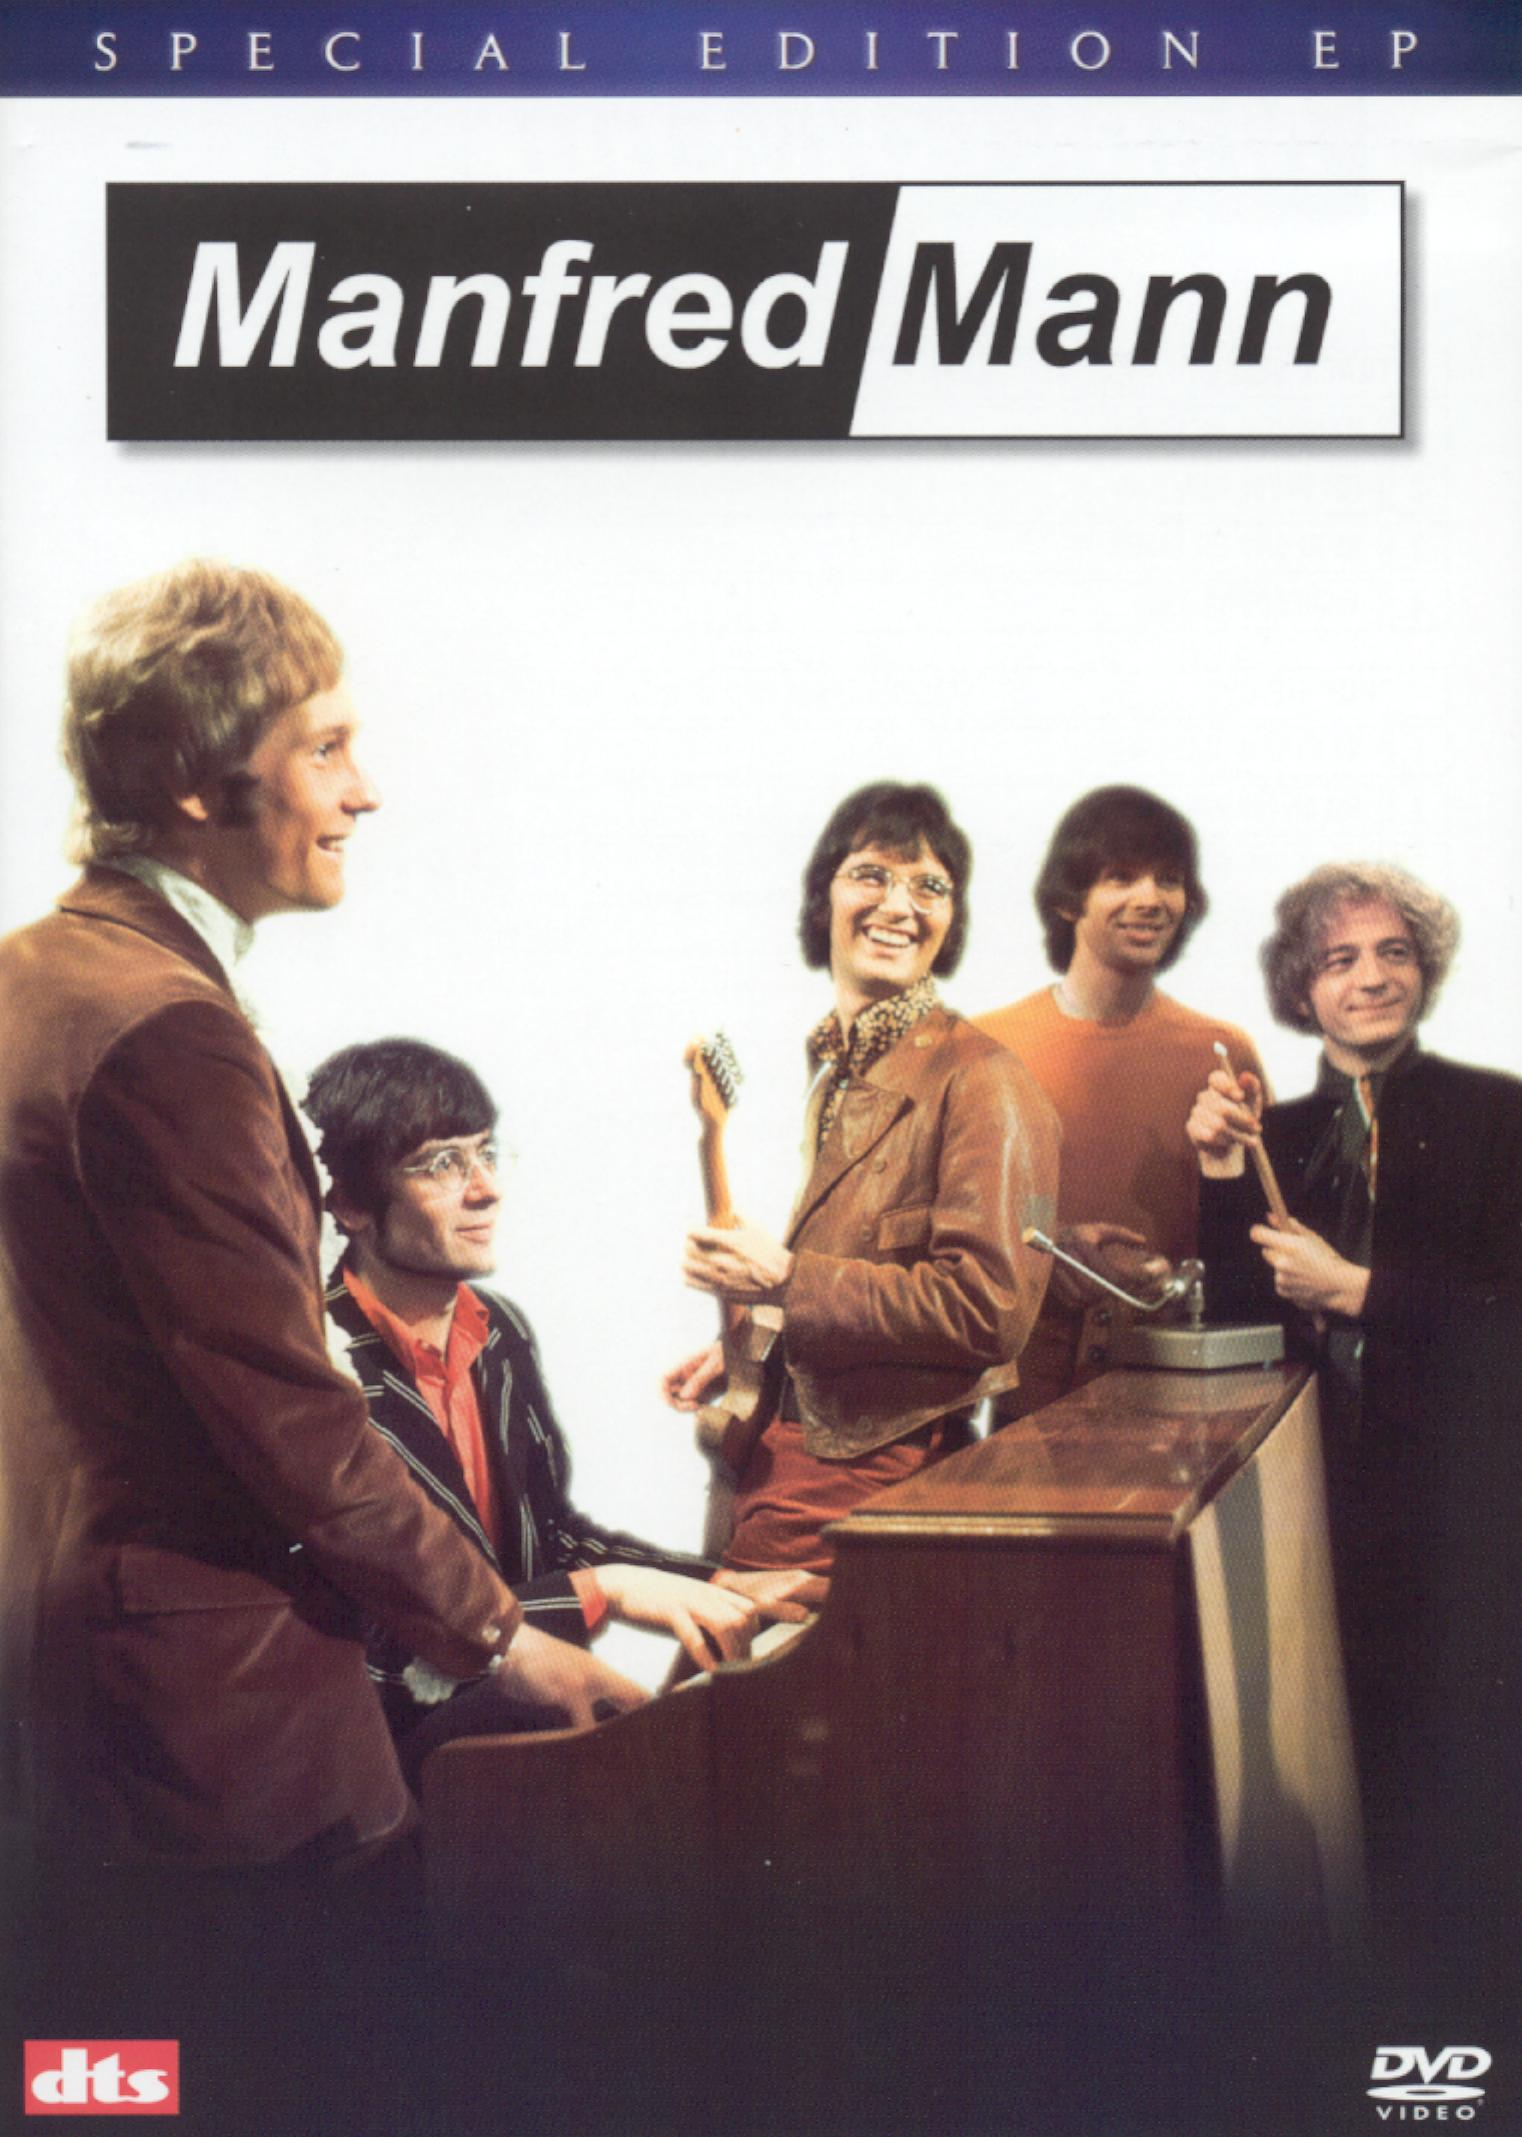 Manfred Mann: Special Edition EP